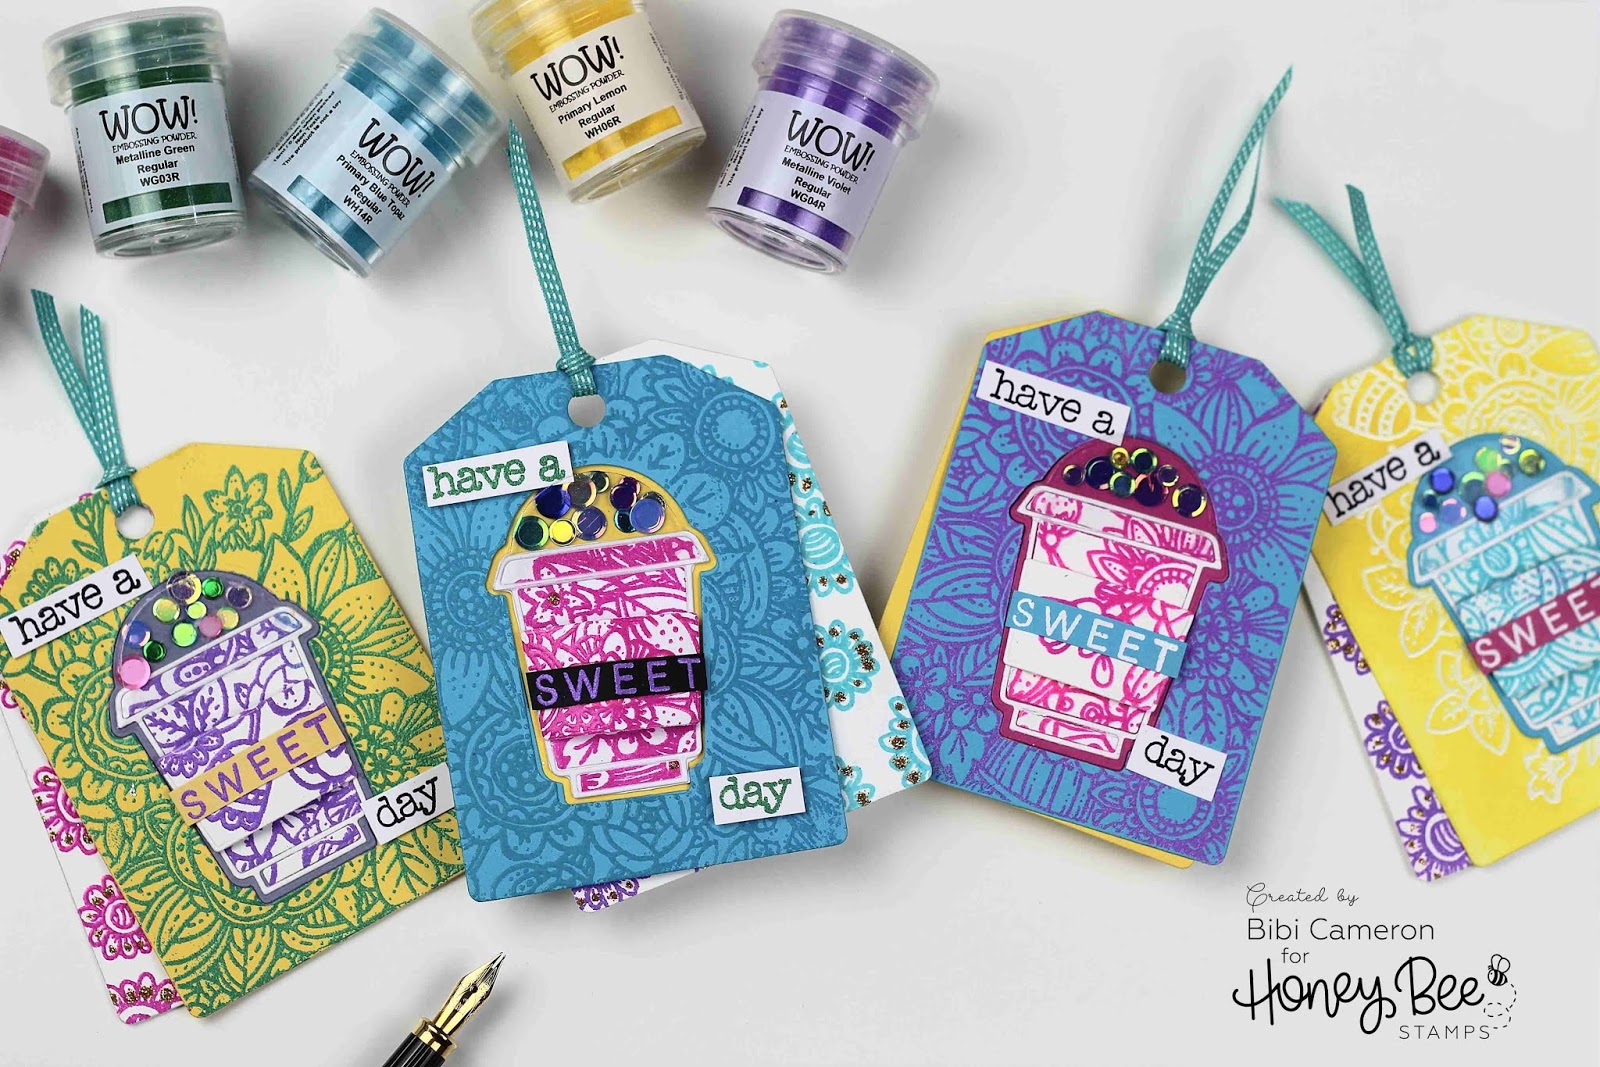 WOW embossing powders and Honey Bee Stamps Blog Hop